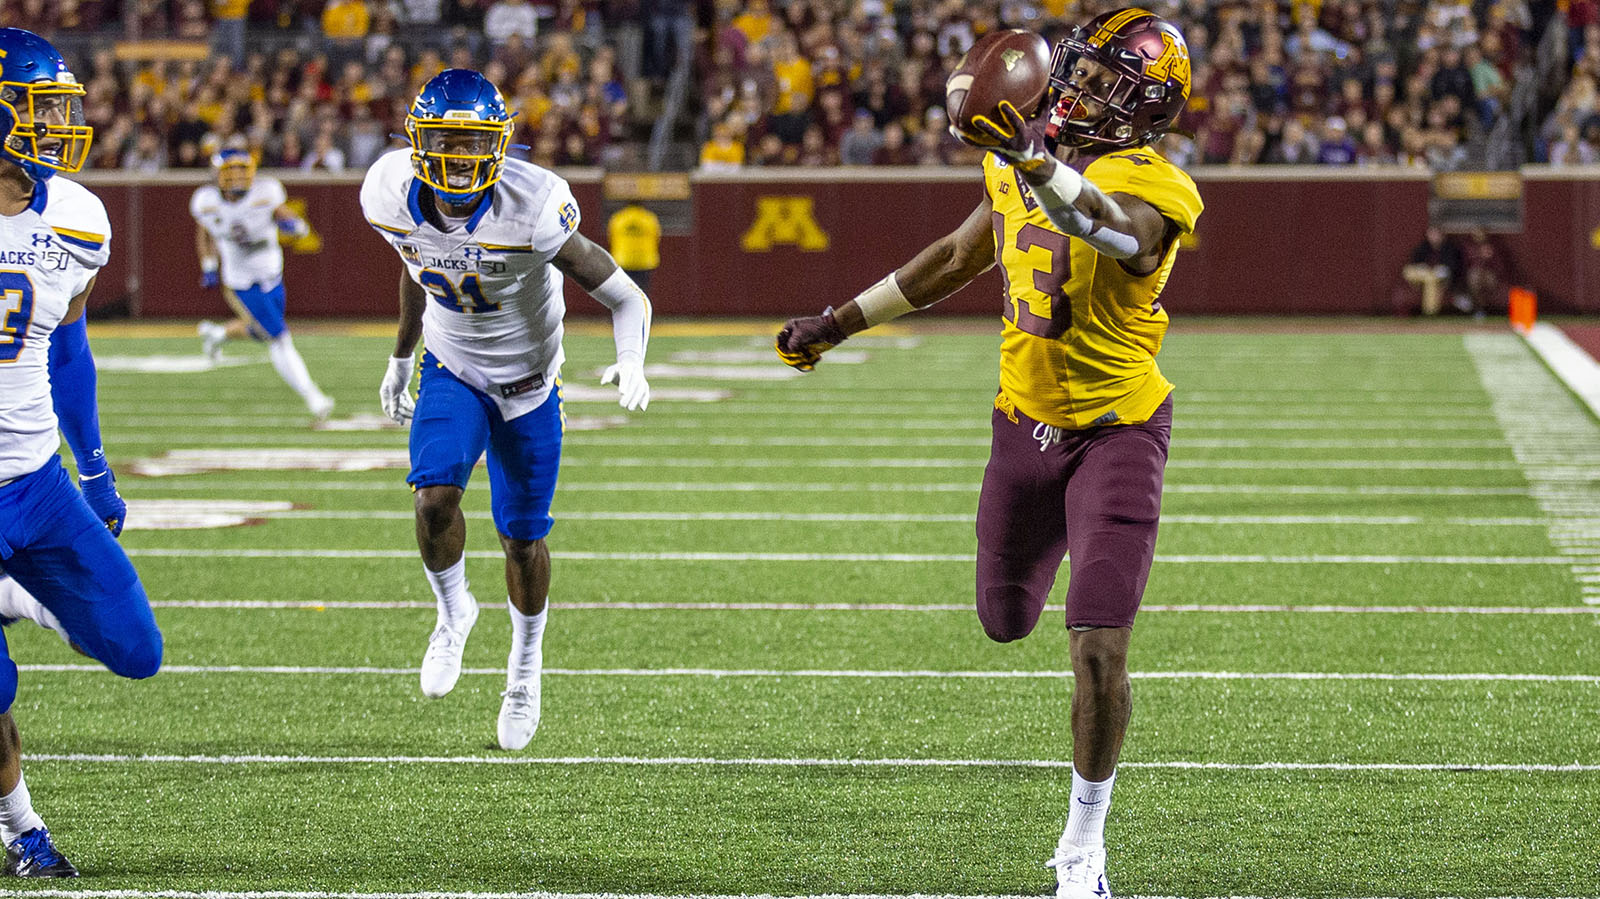 Aug 29, 2019; Minneapolis, MN, USA; Minnesota Golden Gophers wide receiver Rashod Bateman (13) catches a pass for a touchdown in the first half against the South Dakota State Jackrabbits at TCF Bank Stadium. Mandatory Credit: Jesse Johnson-USA TODAY Sports